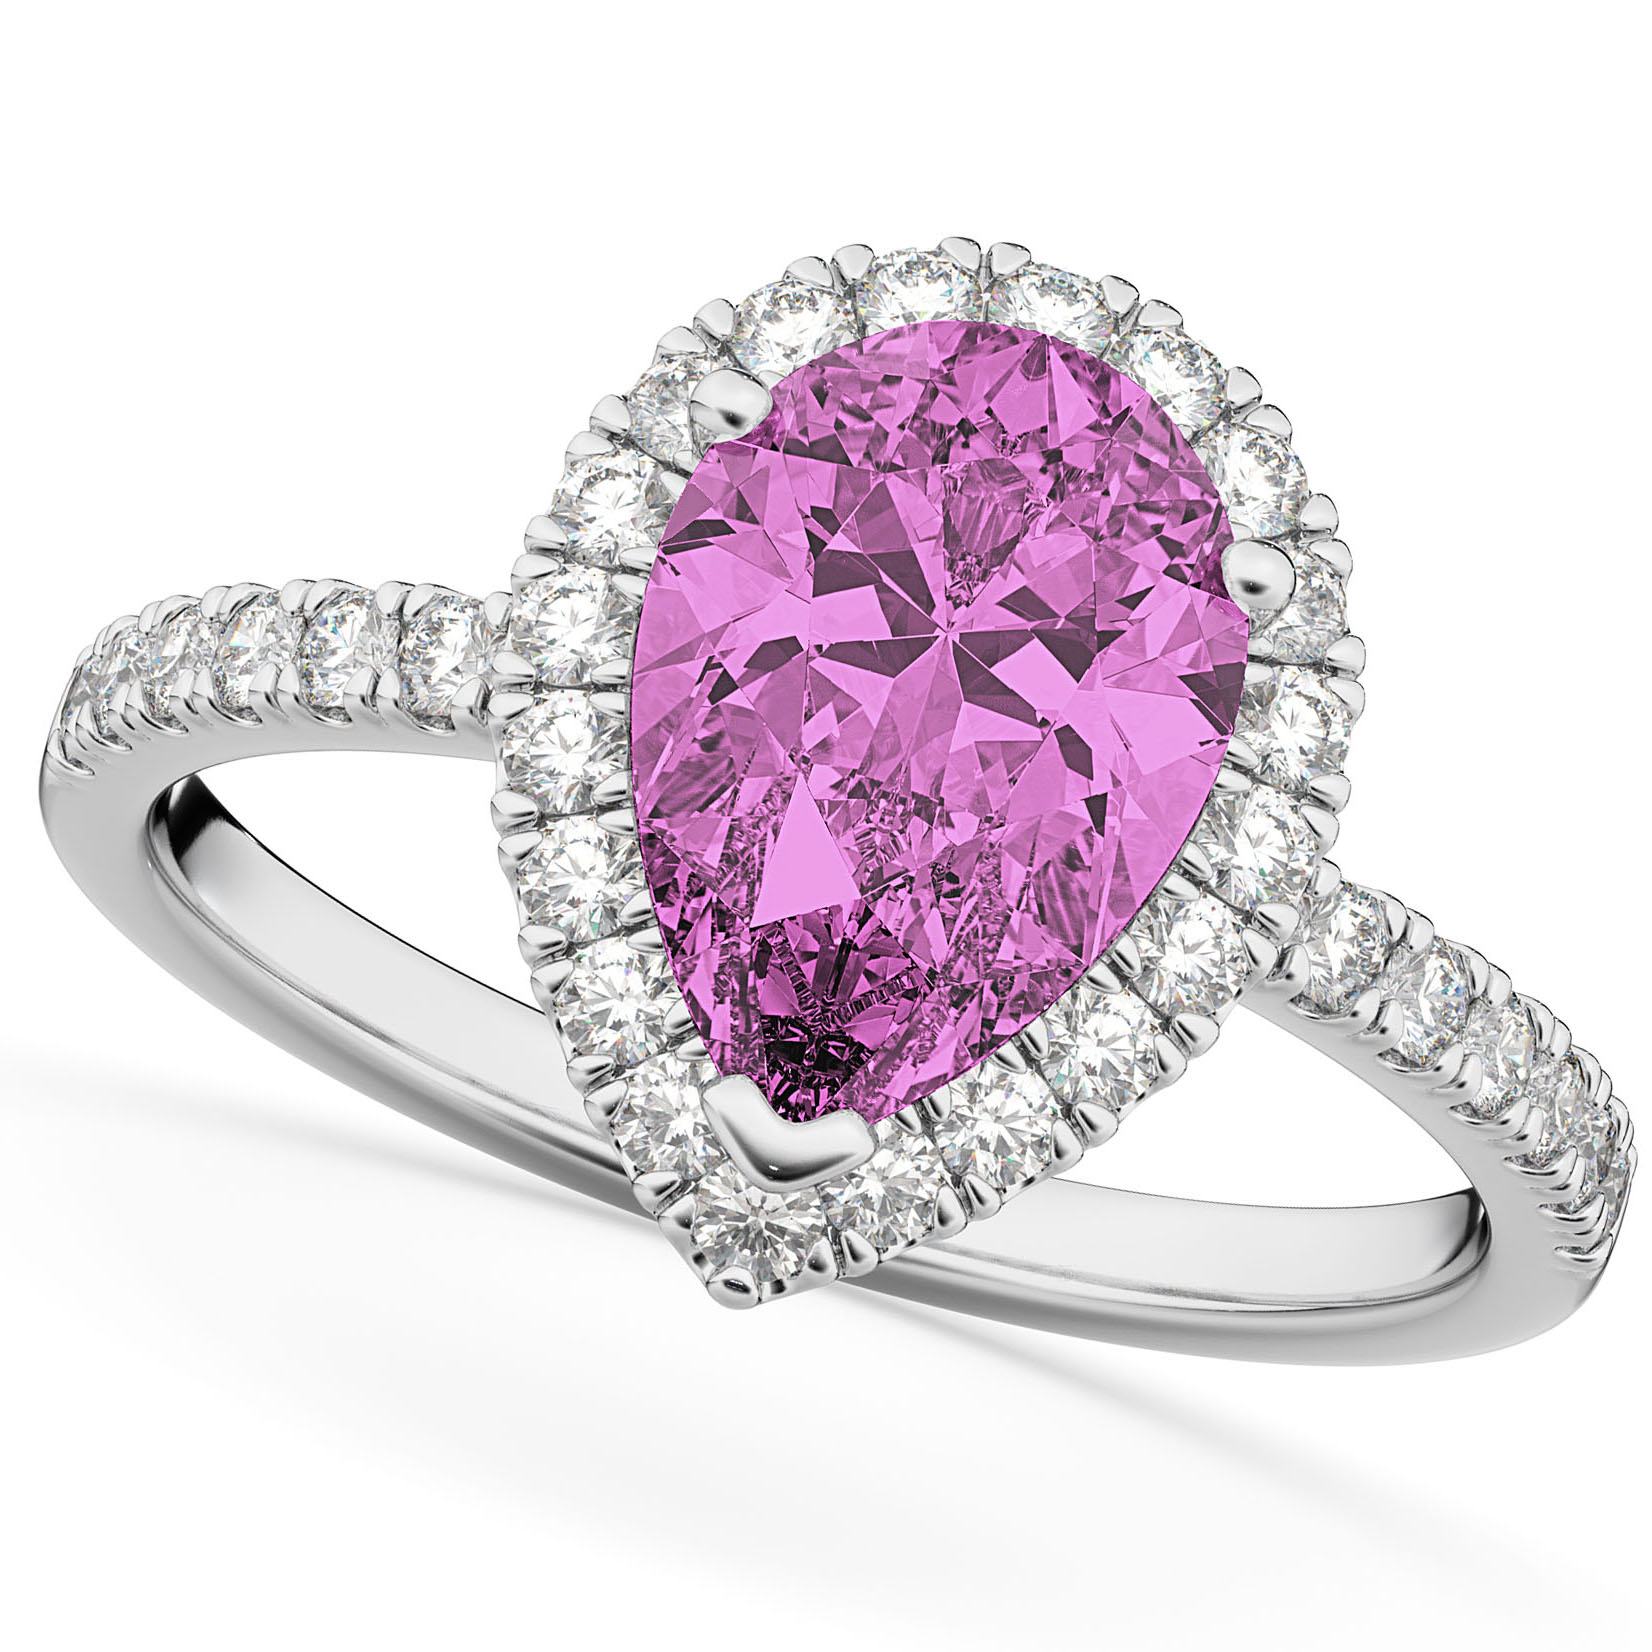 Pear Cut Halo Pink Sapphire & Diamond Engagement Ring 14K White Gold 3.01ct